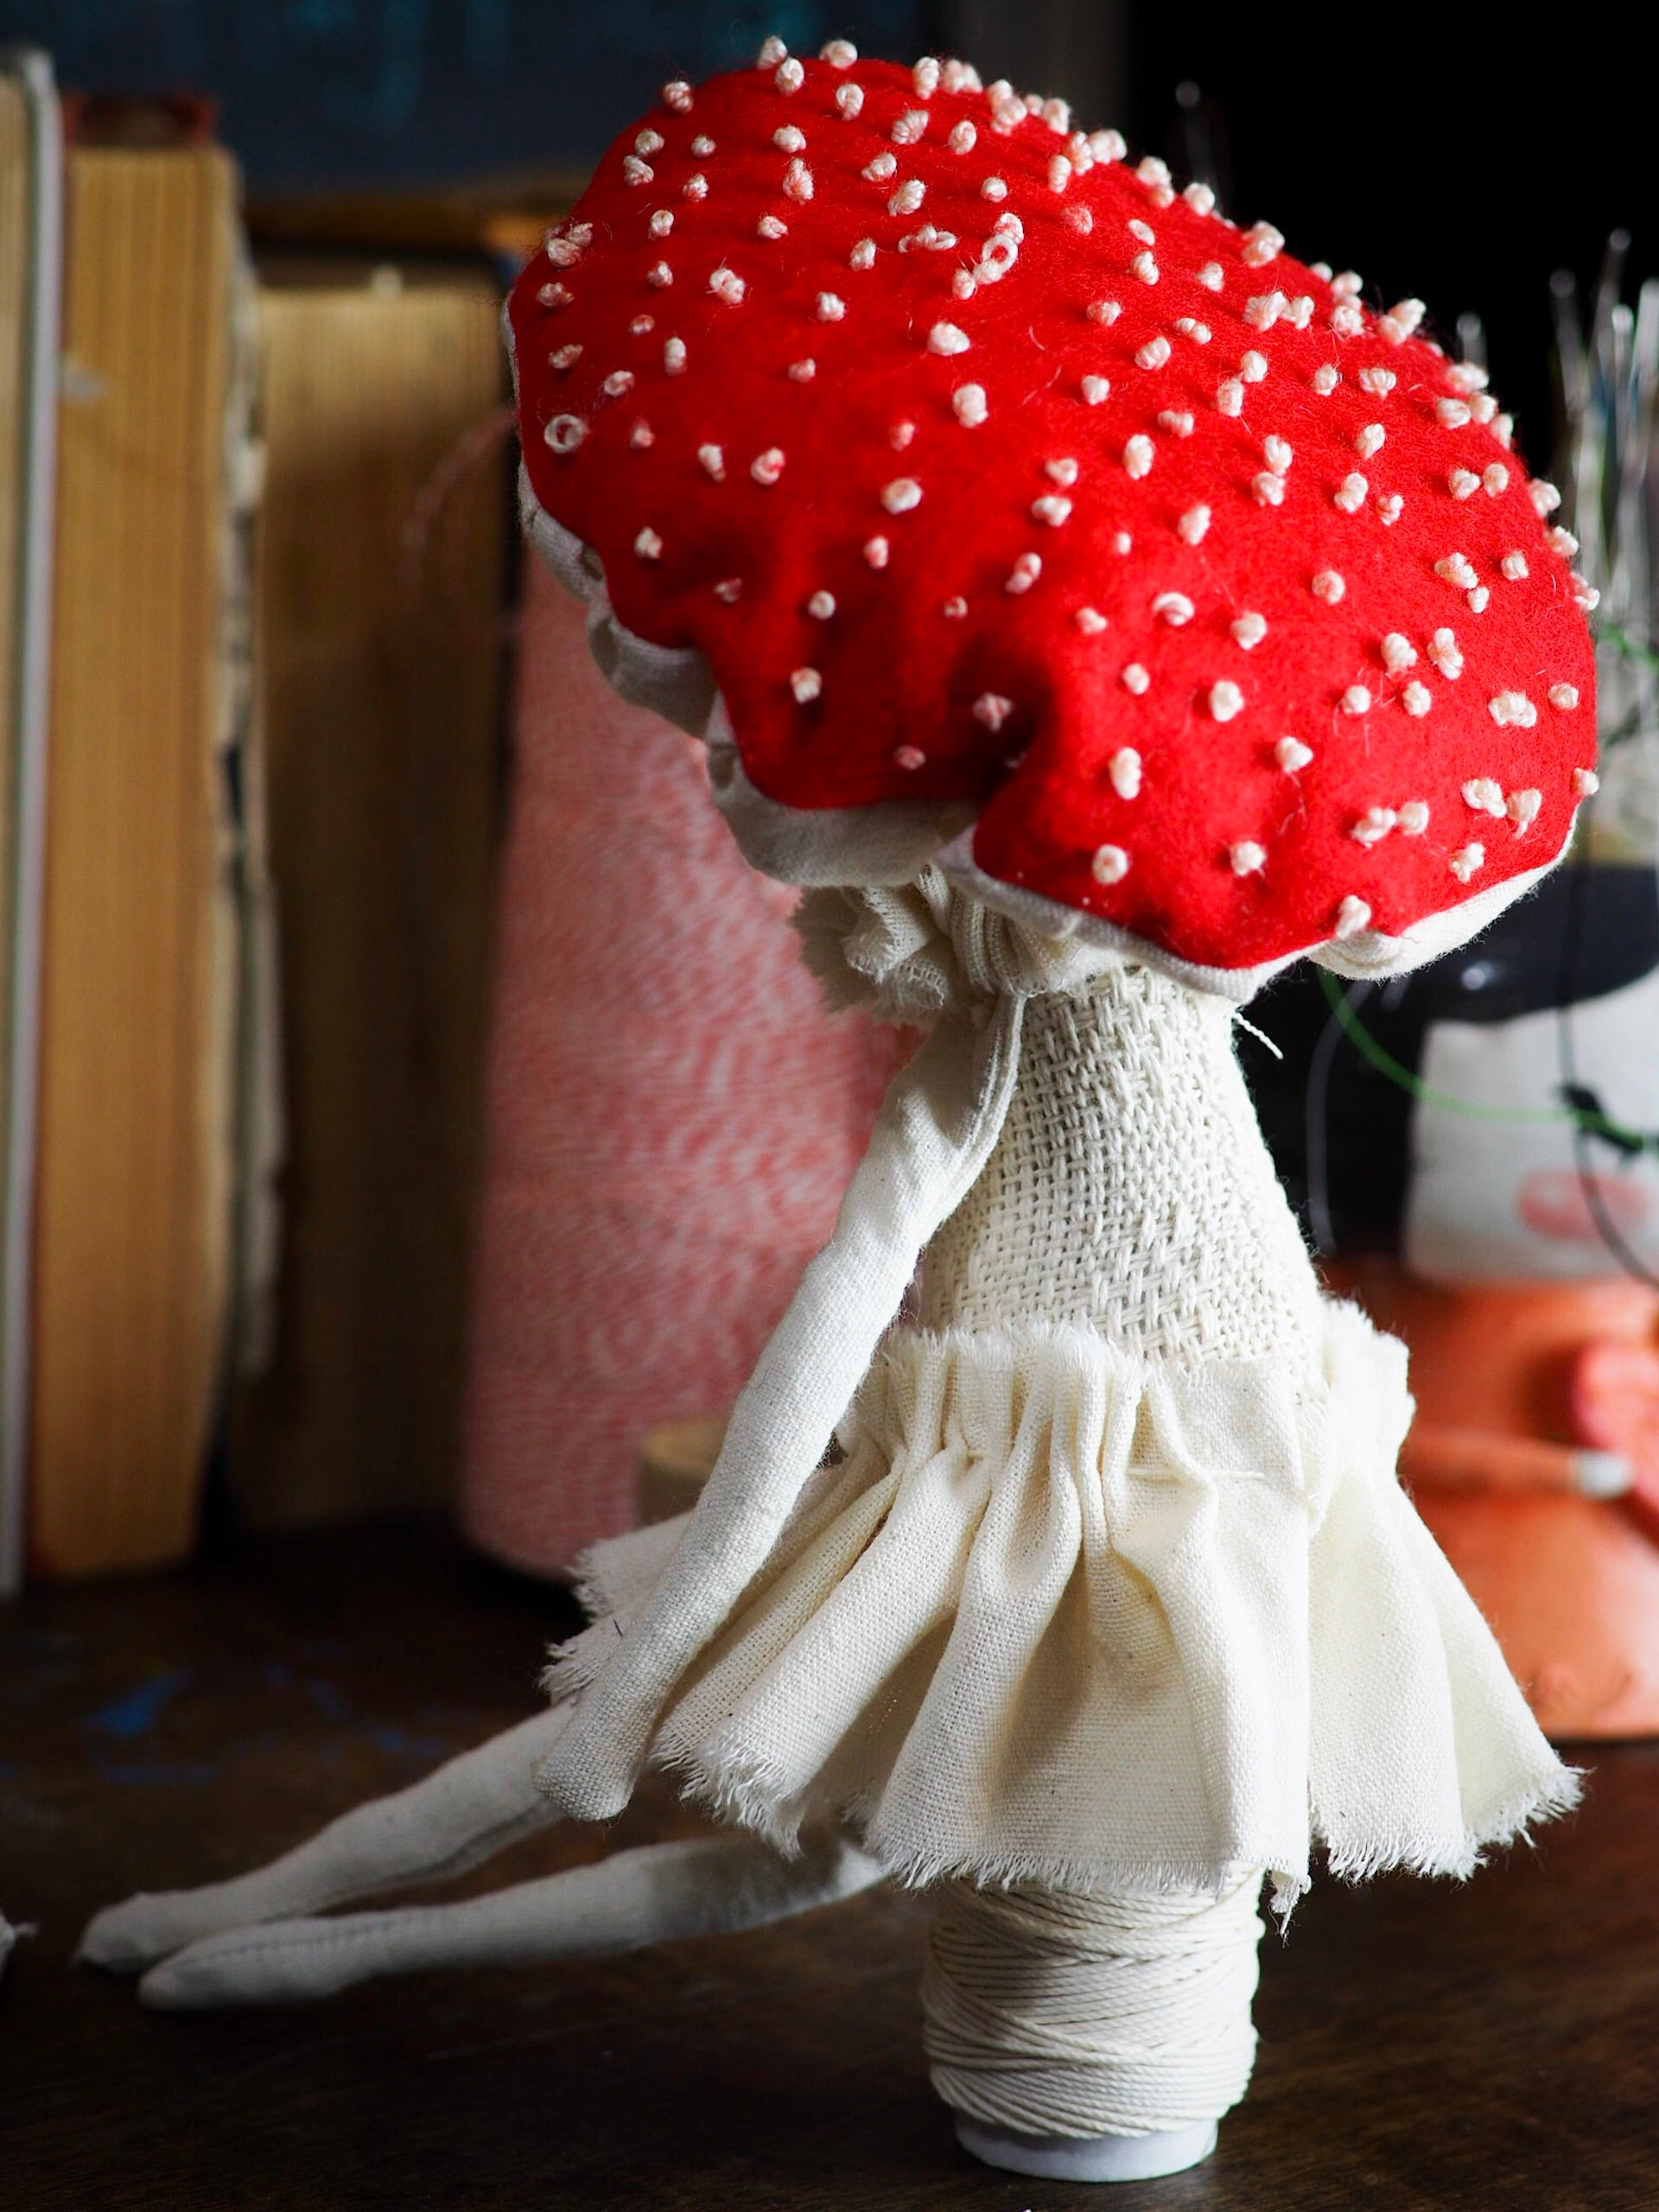 MUSHROOM SPECIMEN N. 3 - Original woodlands handmade art doll by Danita Art, Art Doll by Danita Art